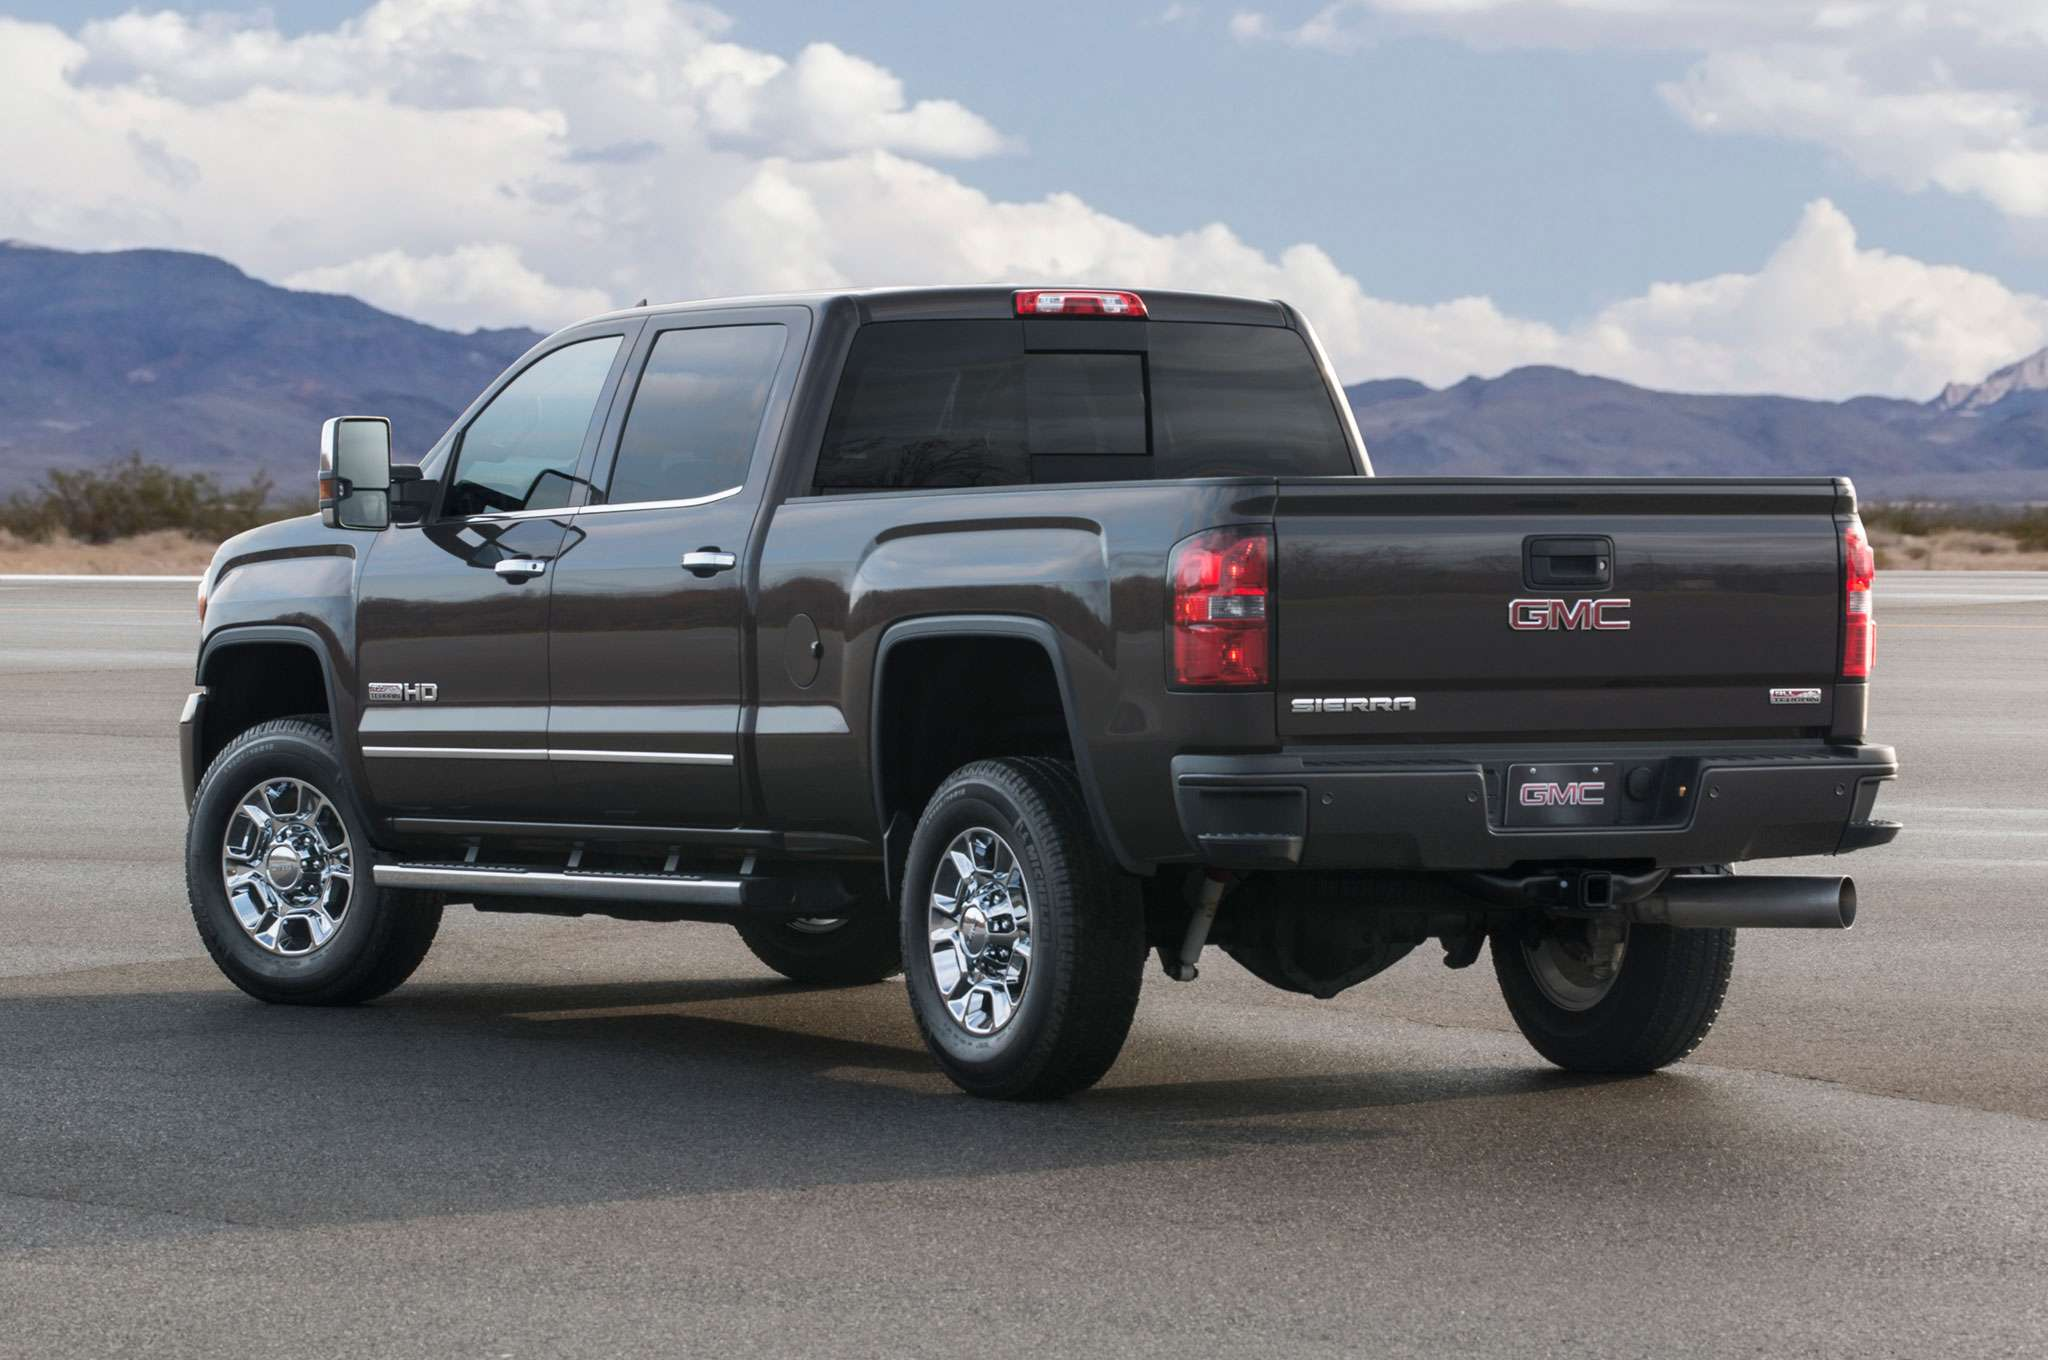 GMC HD 2015 All Terrain Foto: GMC